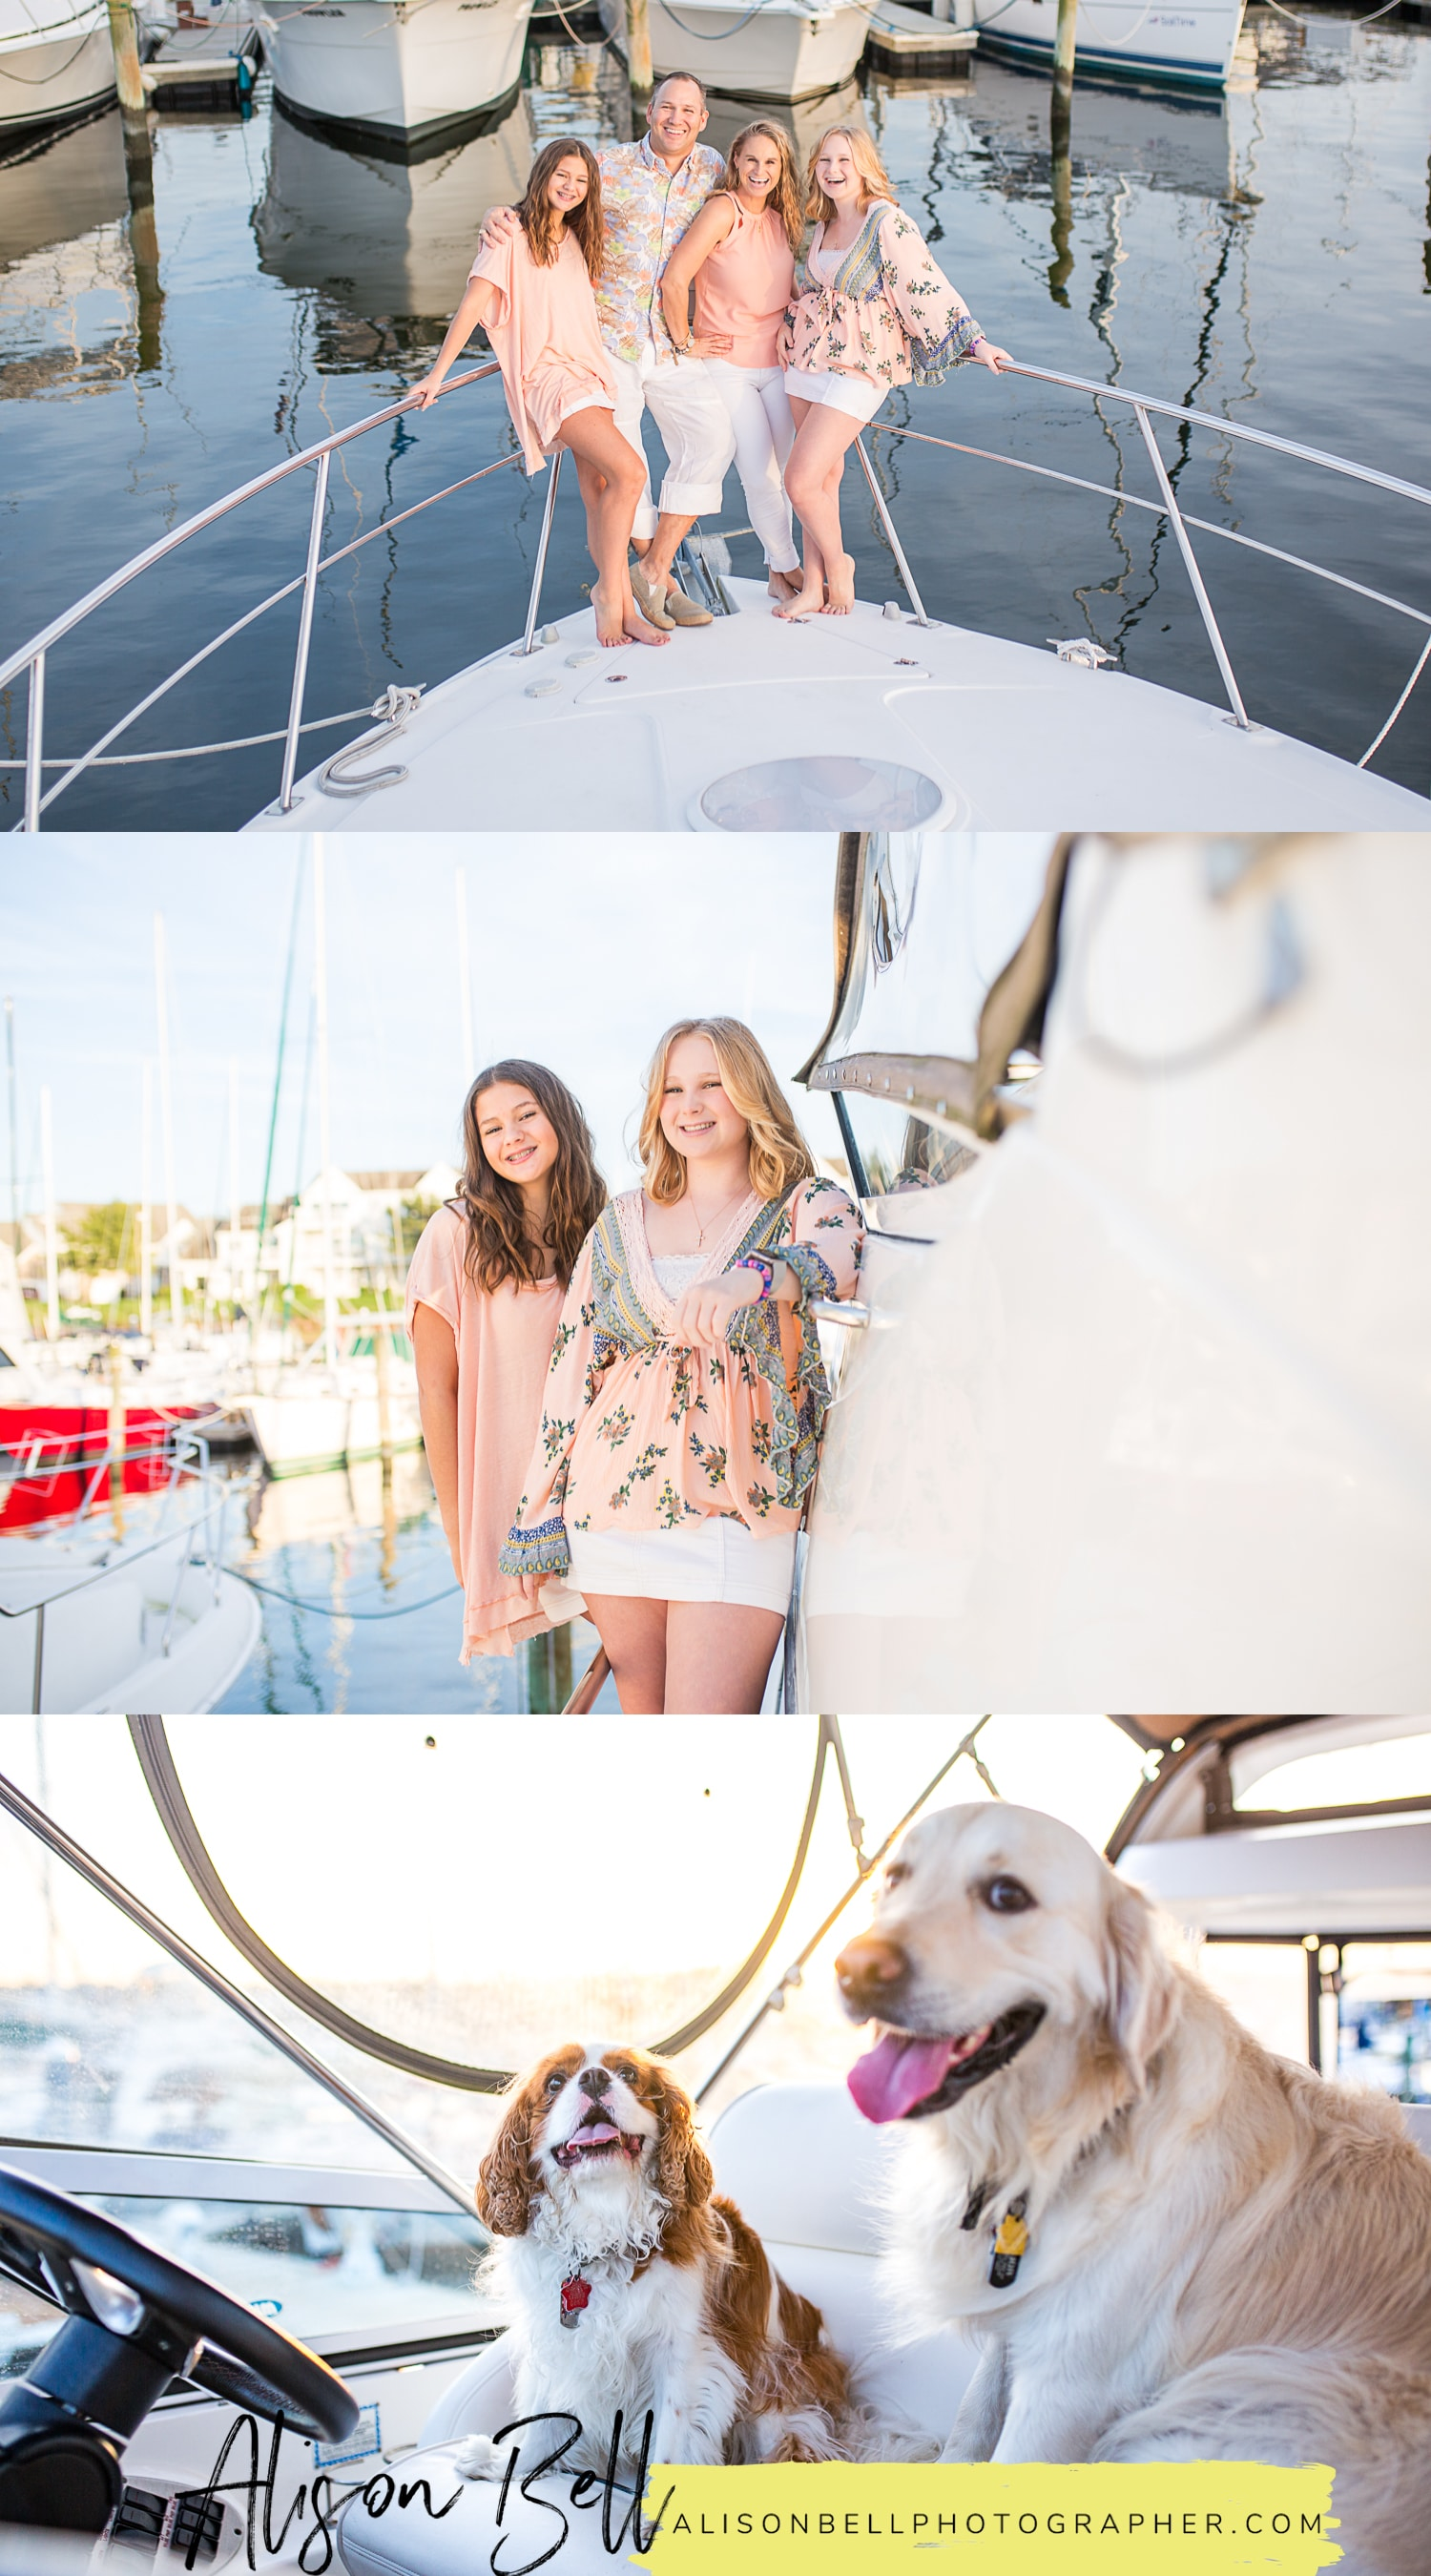 Family photo session on the boat docked in the marina, east beach norfolk